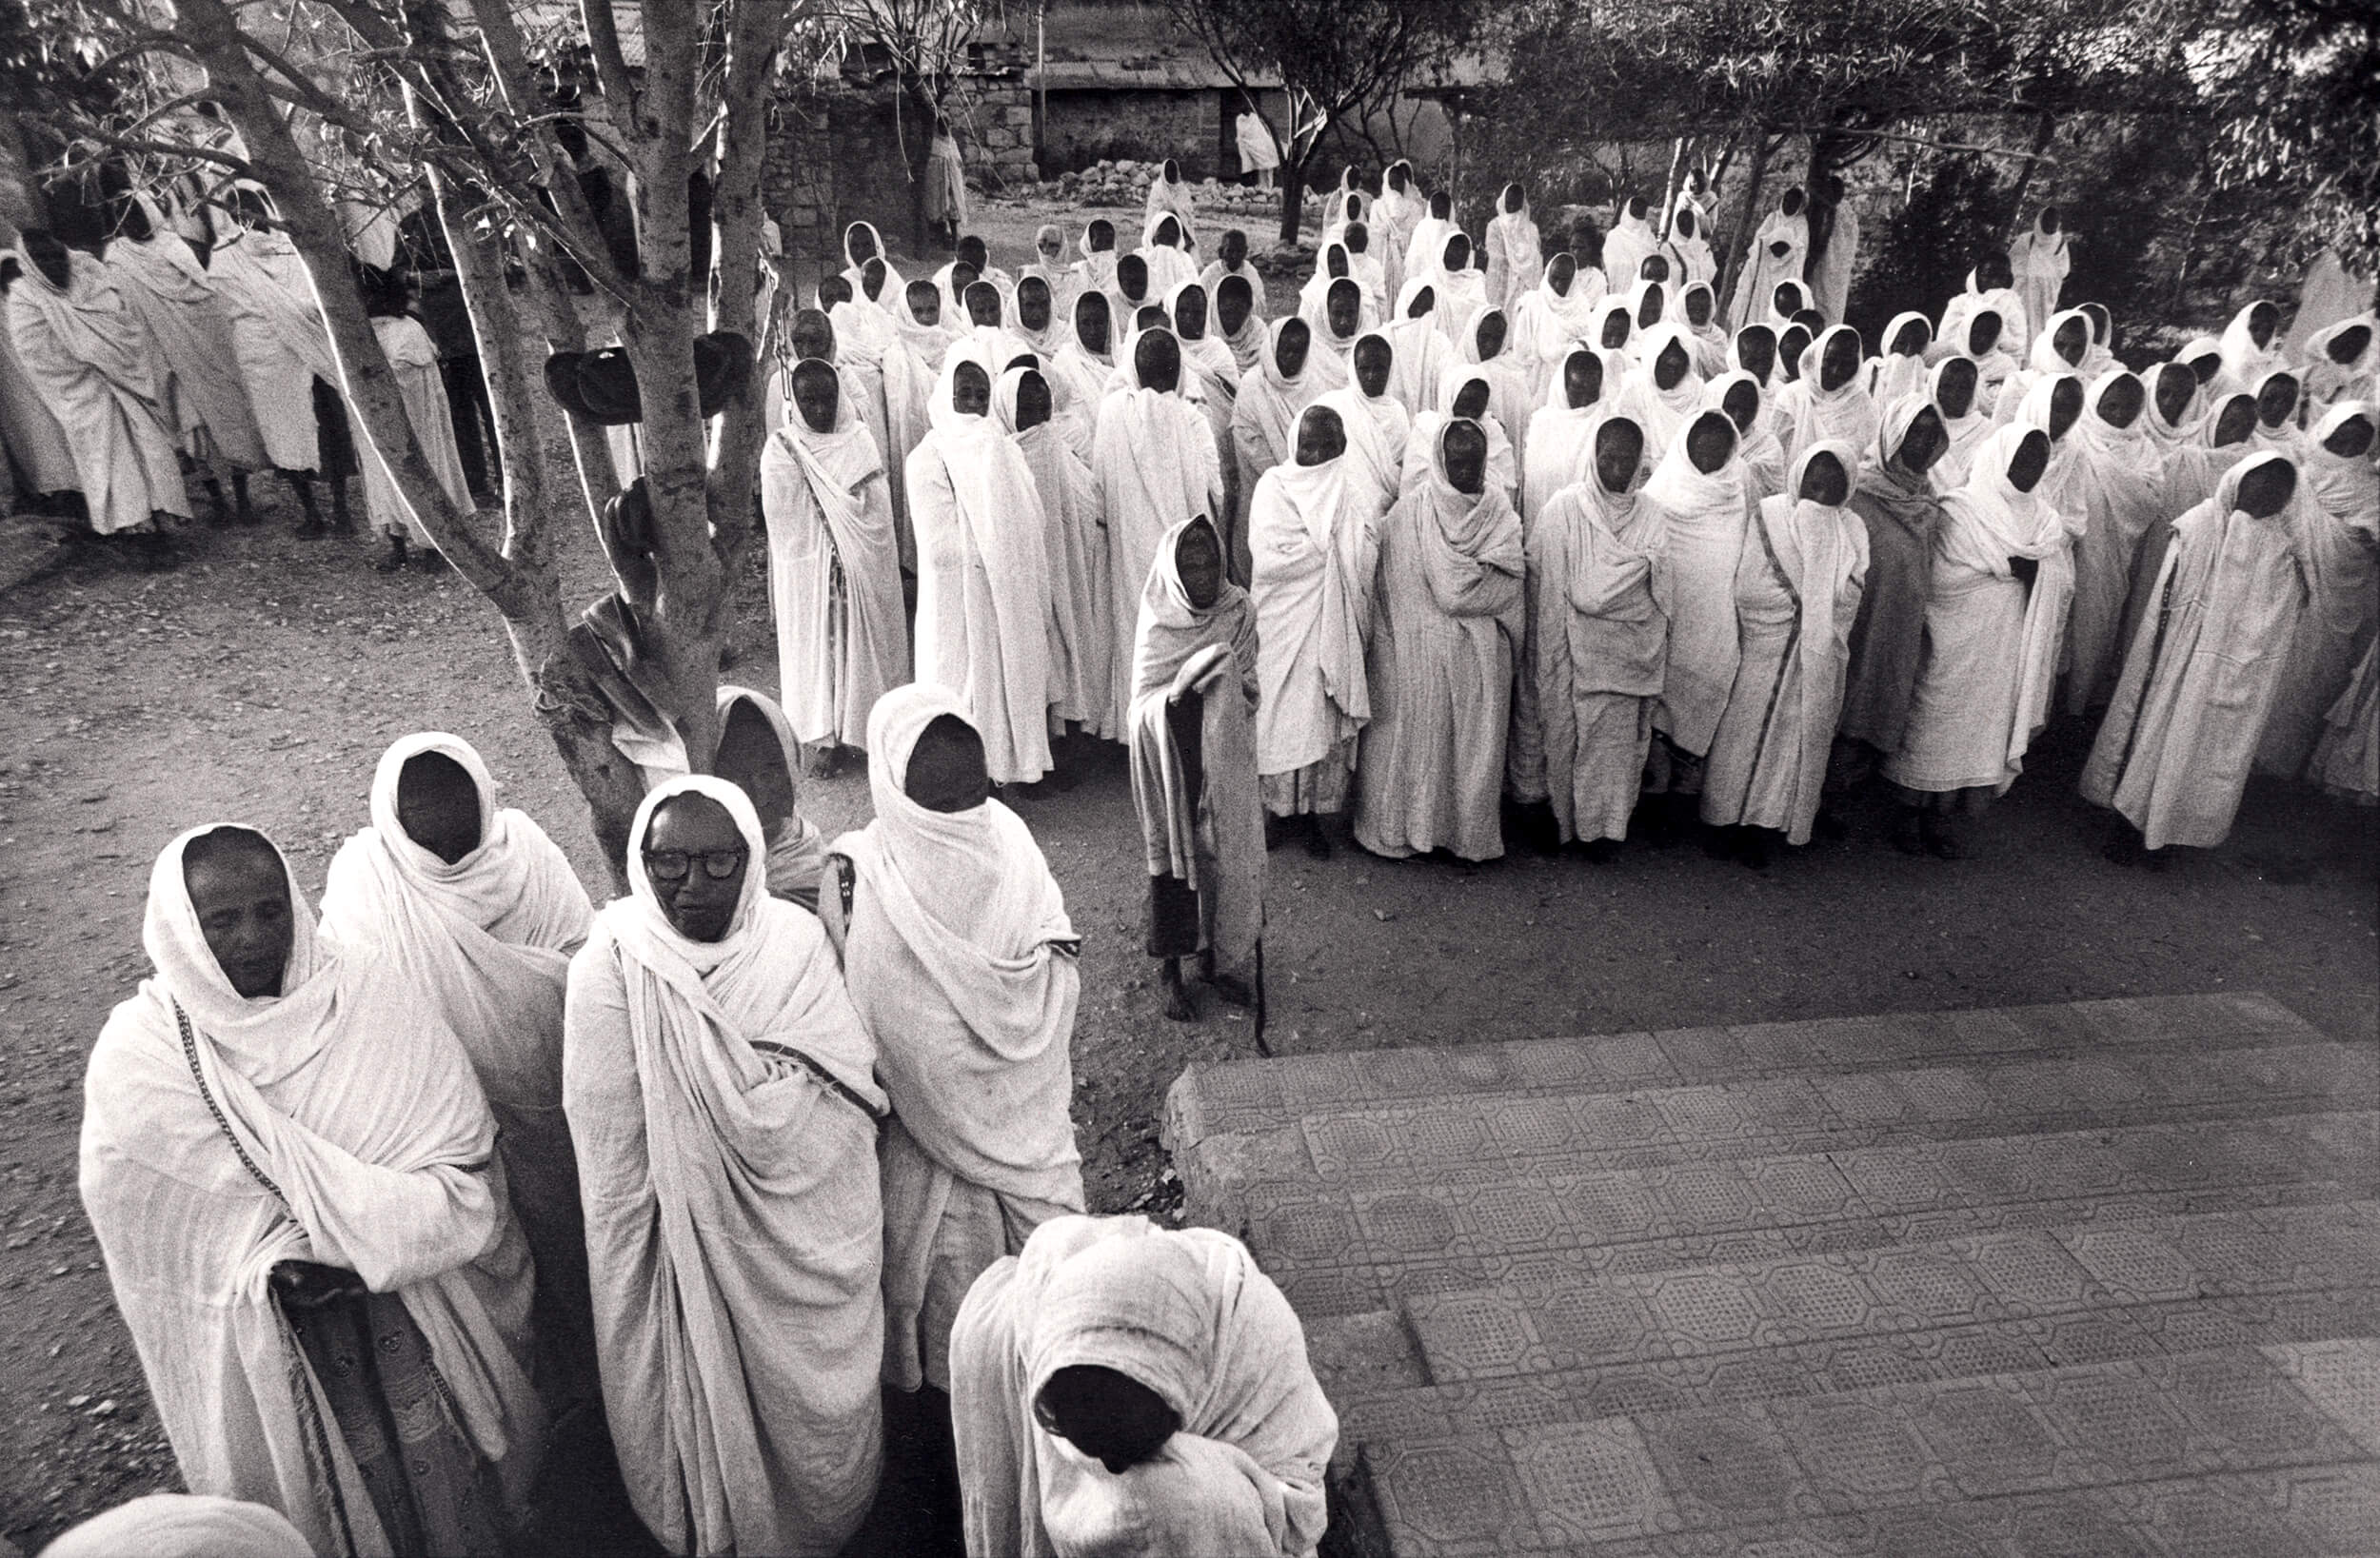 Christian orthodox ceremony in the dawn during the war. Adi Qaie, Eritrea 1990.